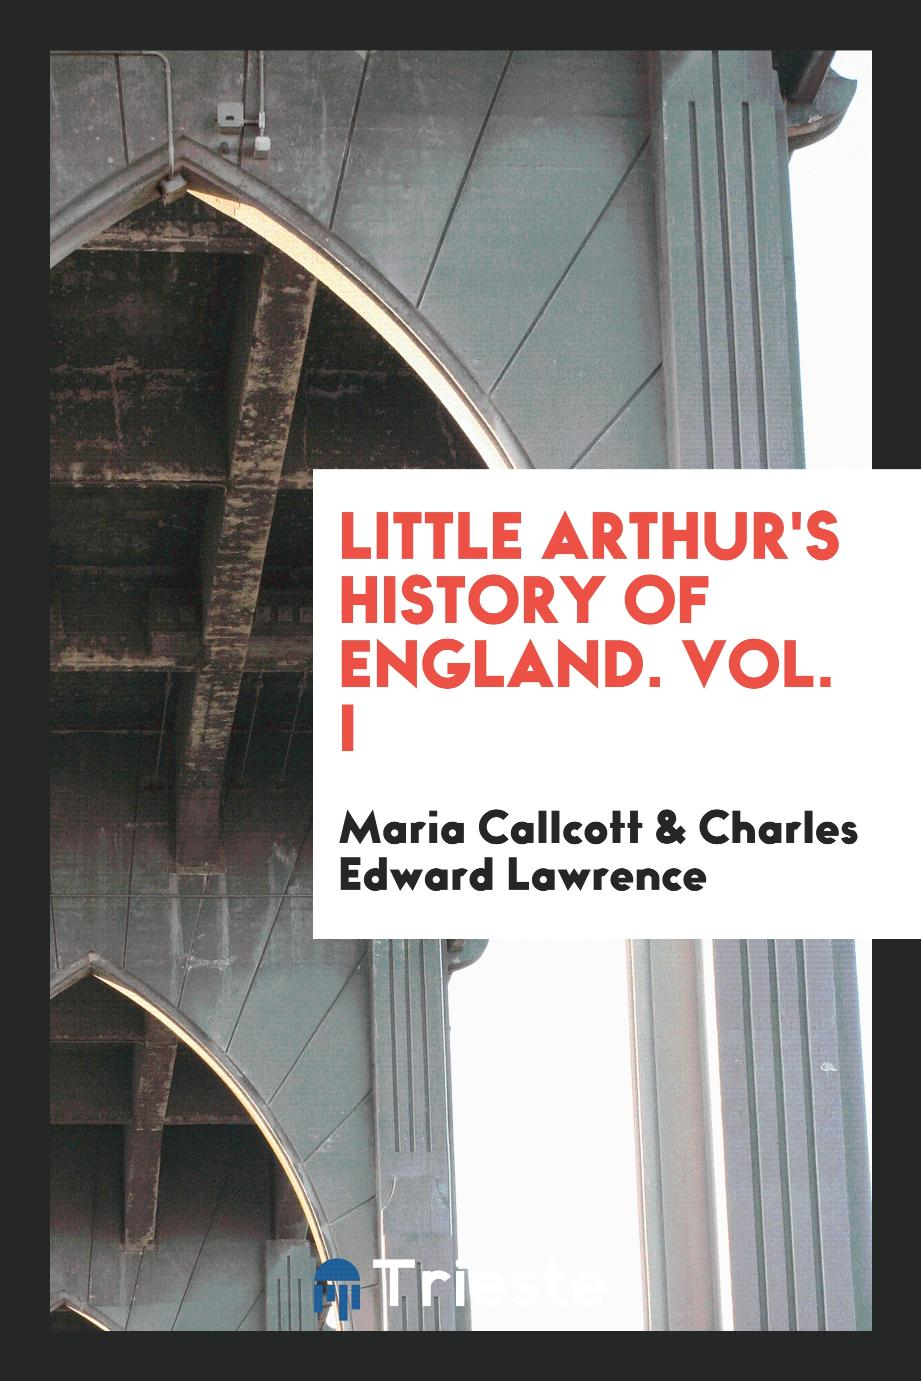 Little Arthur's History of England. Vol. I